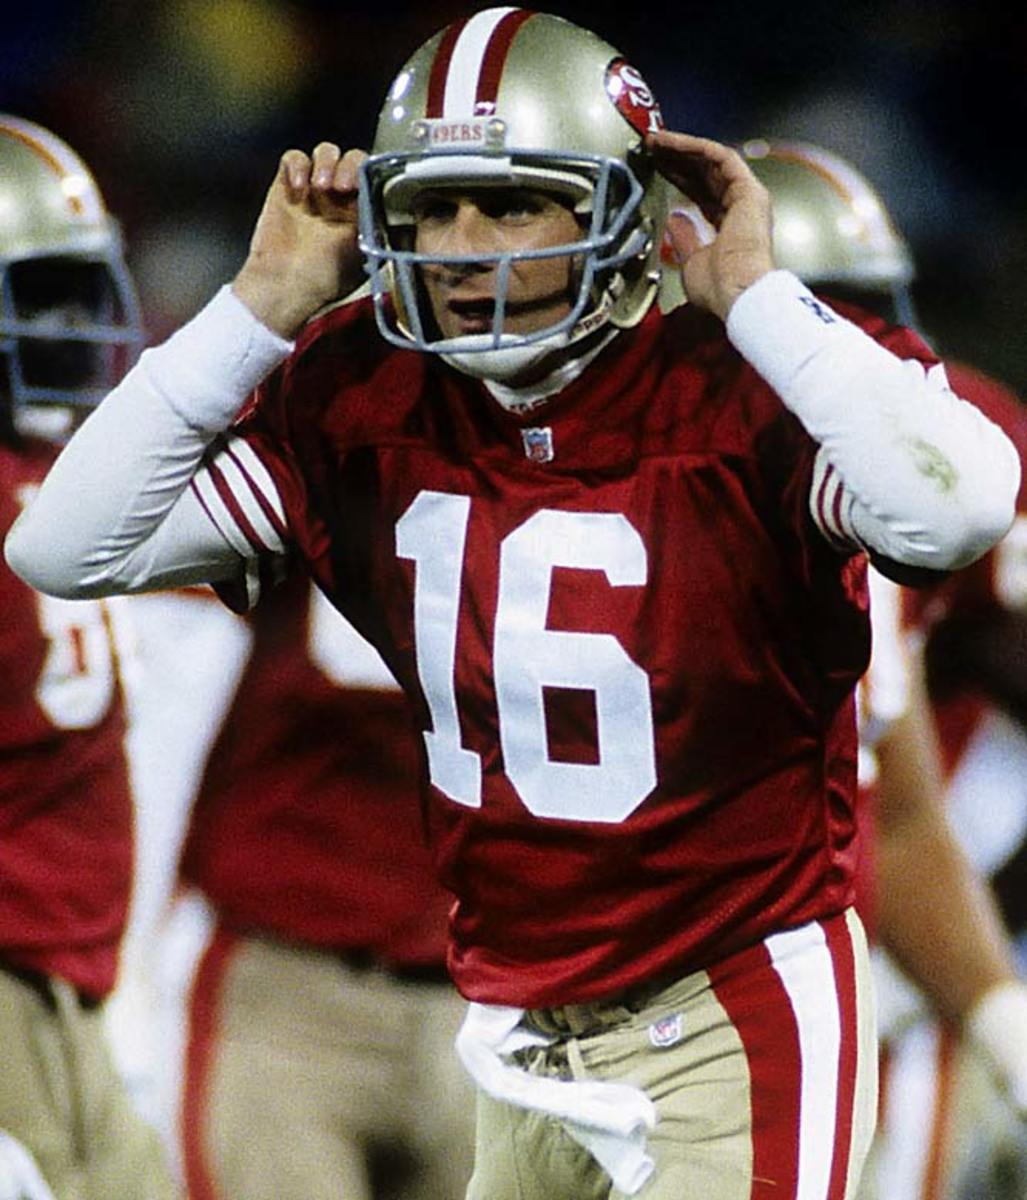 1990 49ers (10-0), lost 28-17 to Rams